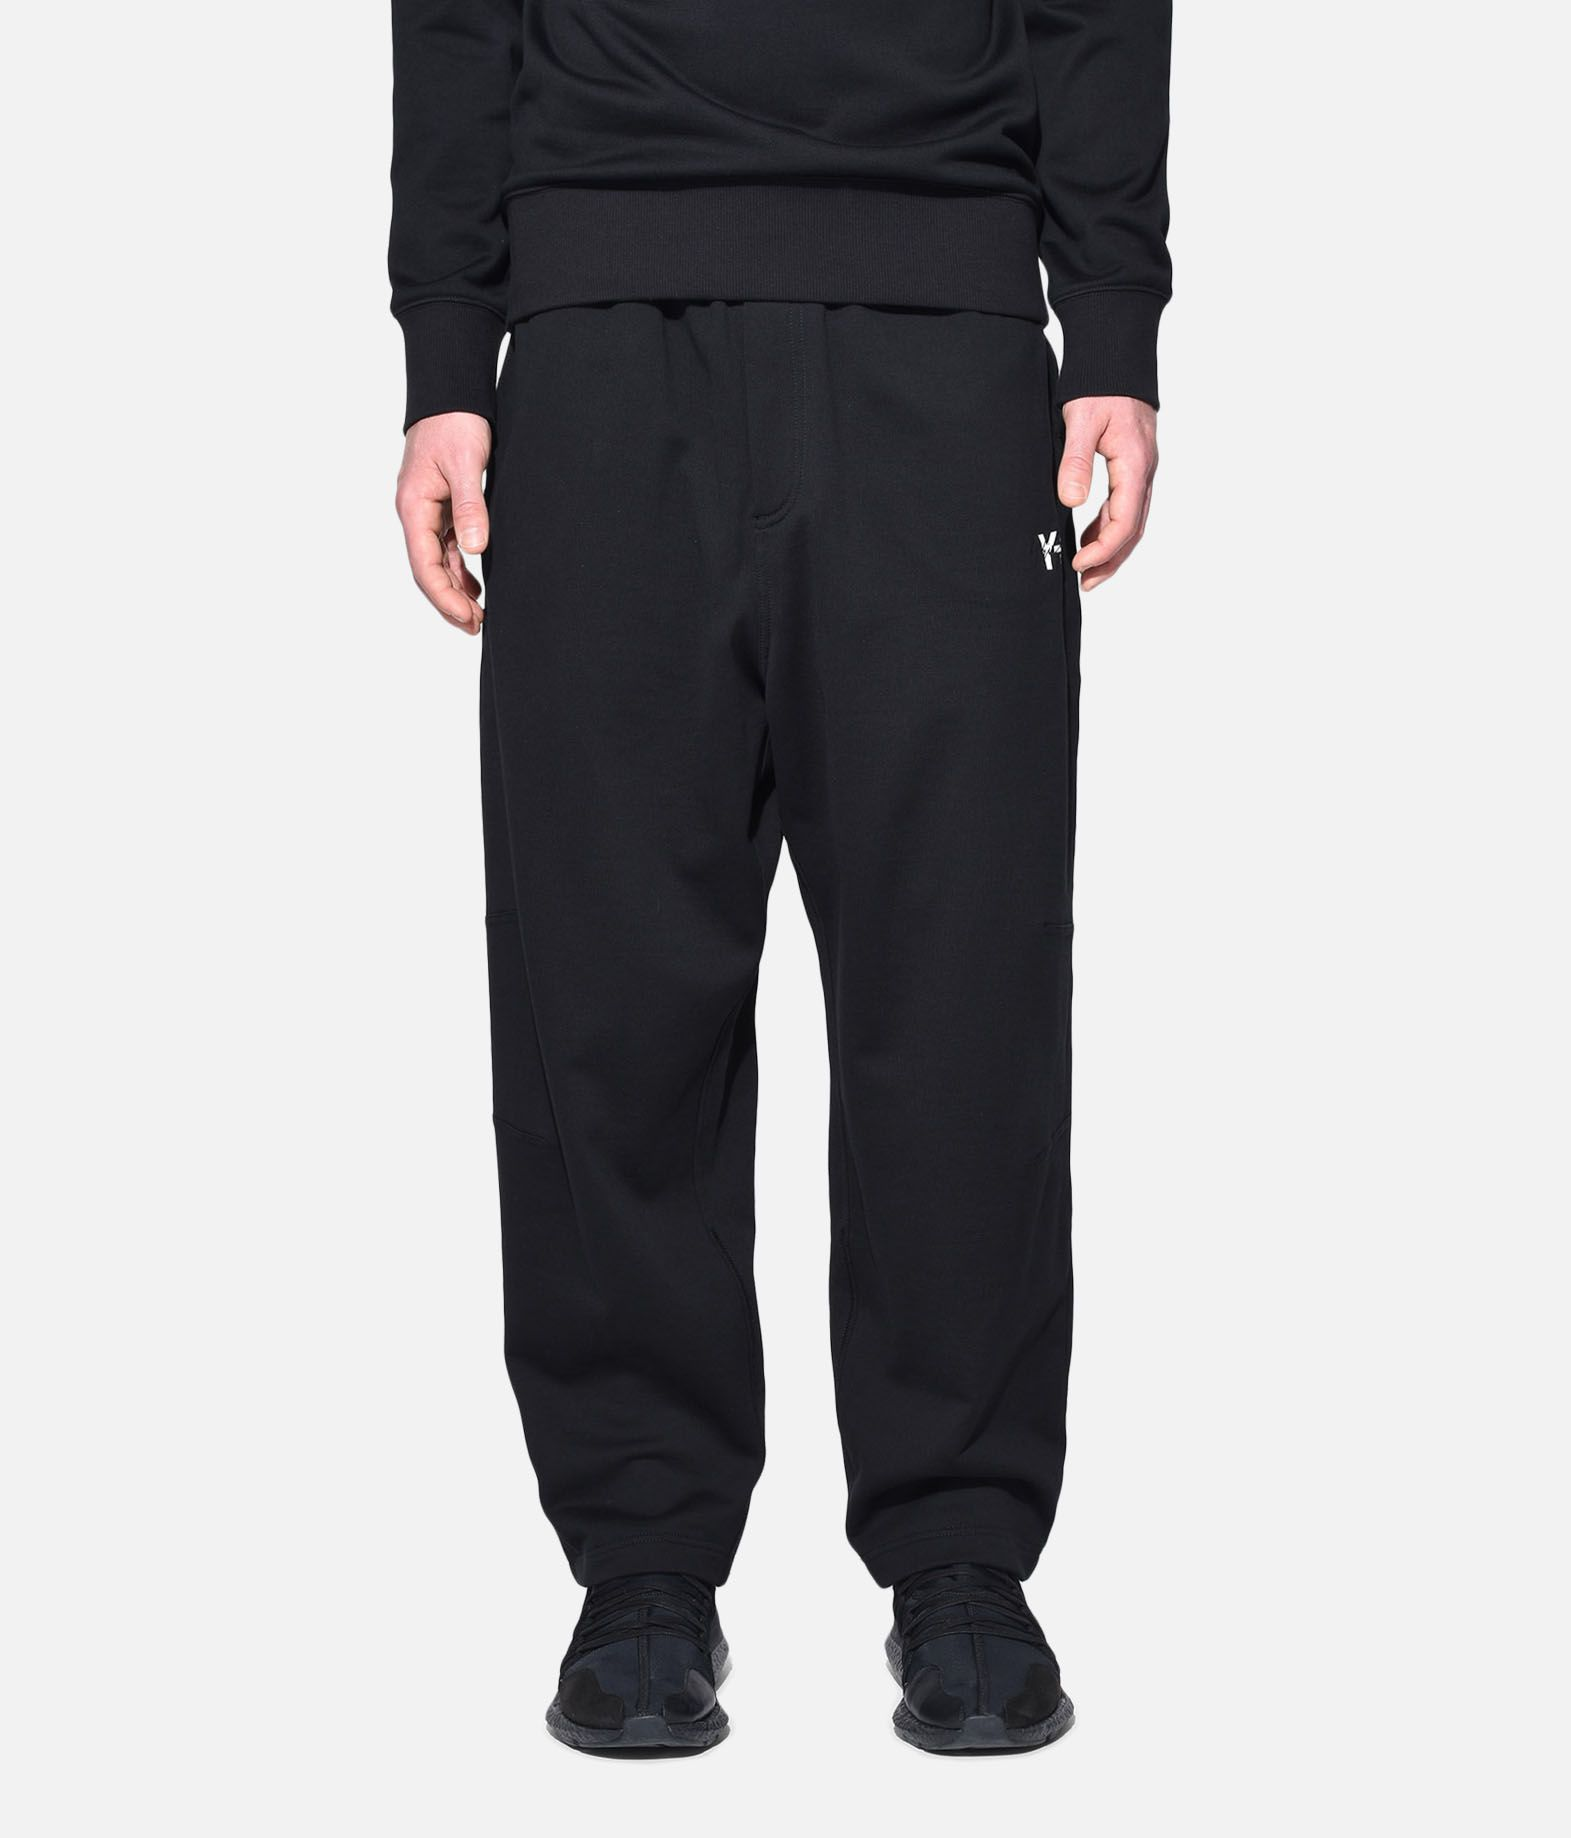 Y-3 Y-3 Sashiko Pants Sweatpants Man r